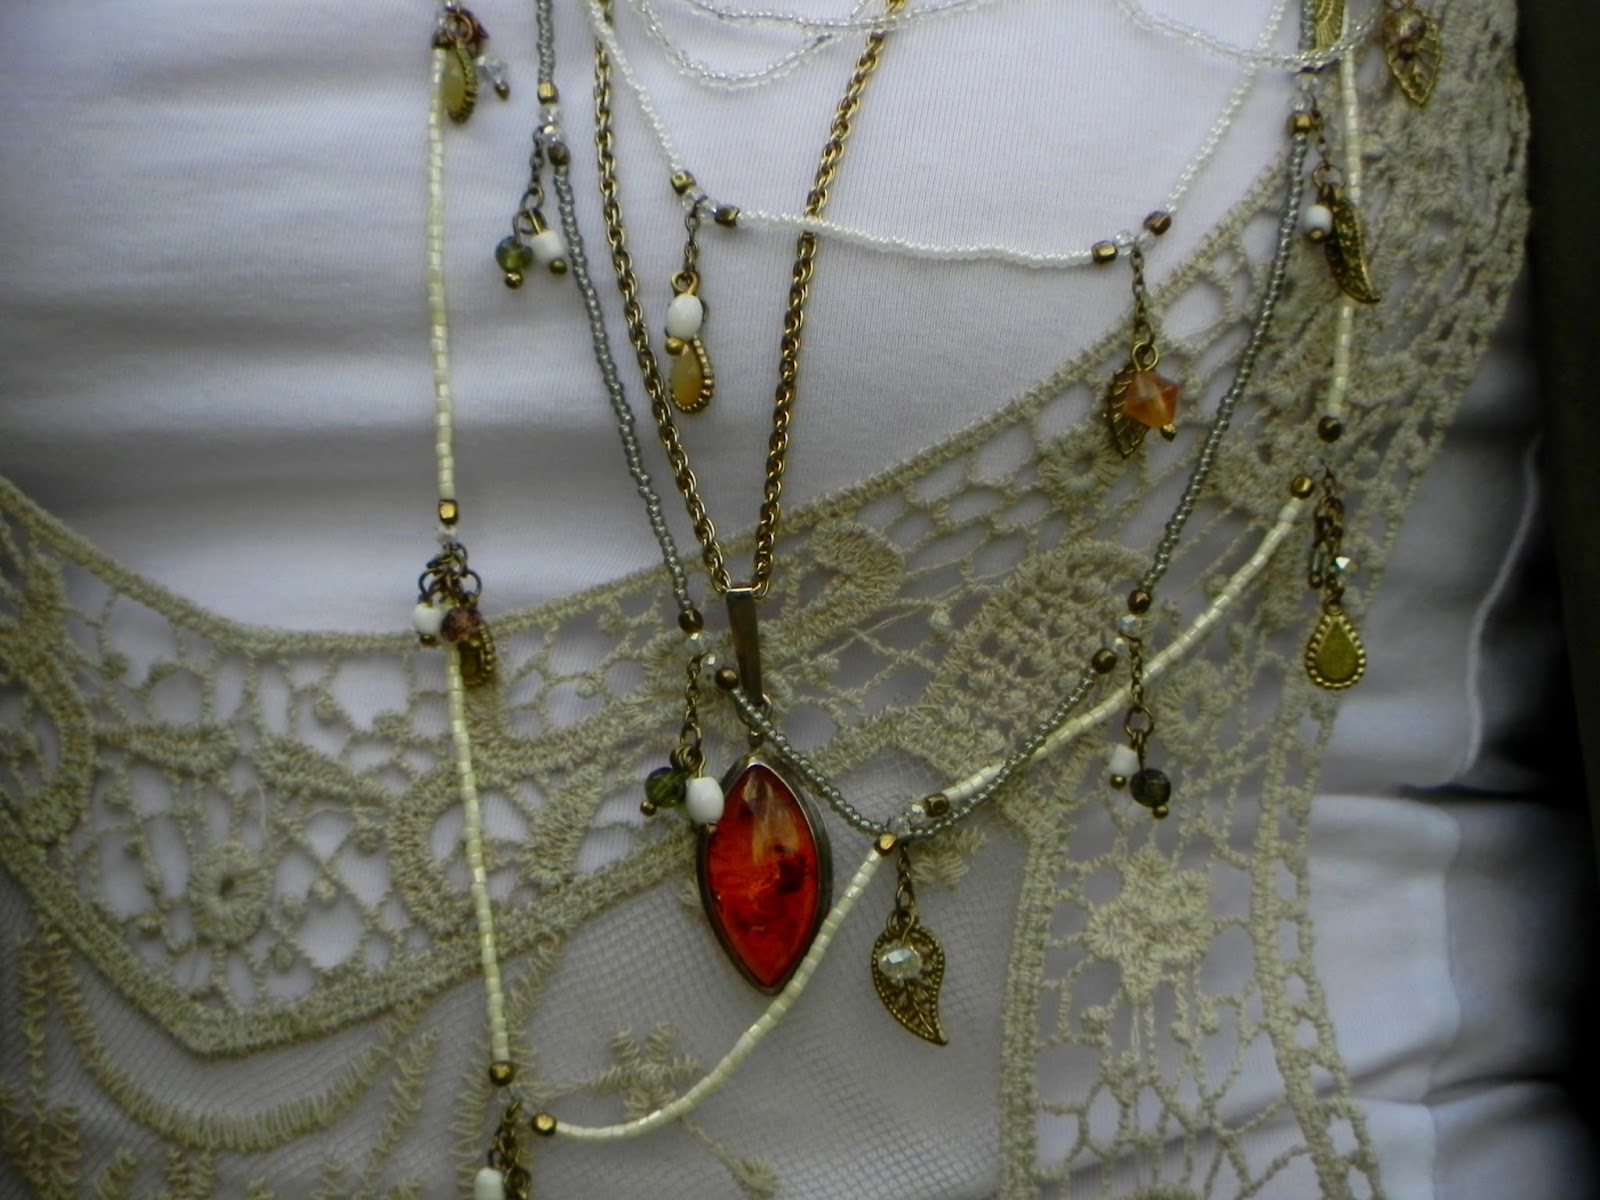 Layered necklaces, Amber and lace.